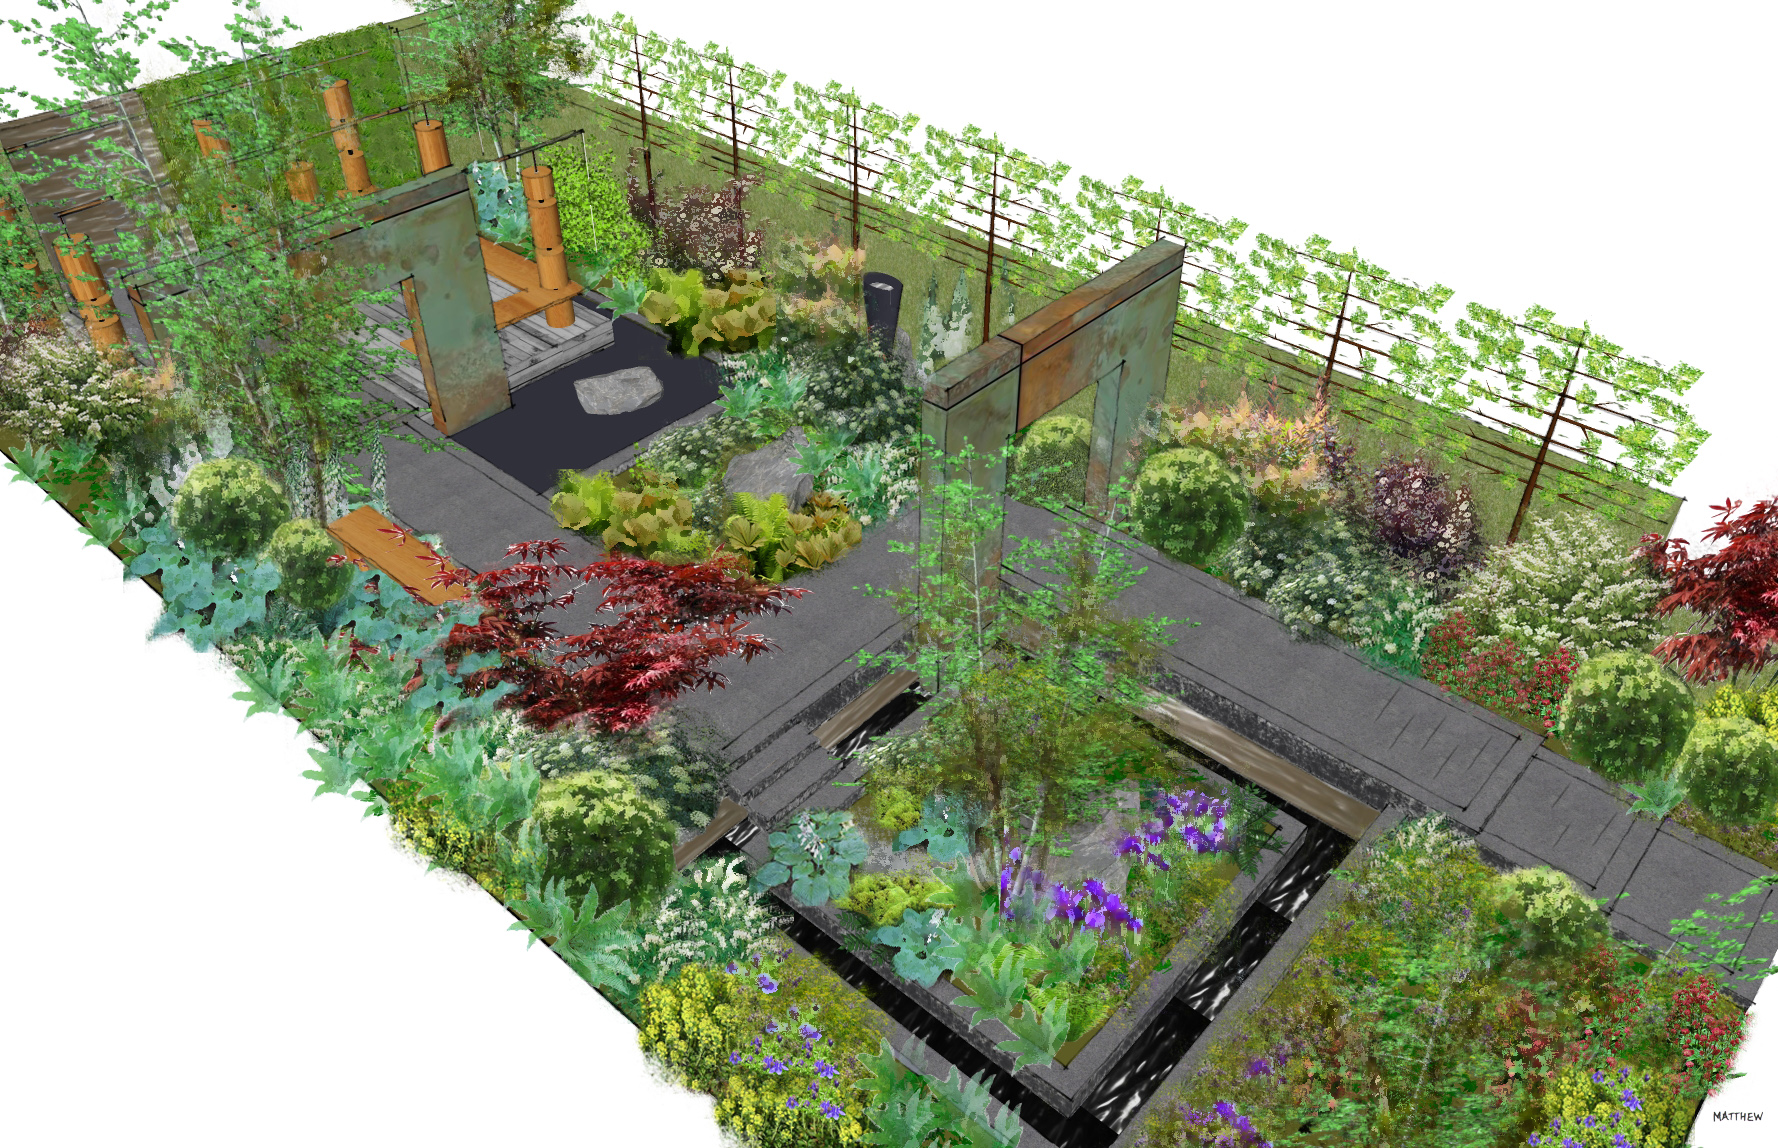 Brewin Dolphin Garden Announced For RHS Chelsea Flower